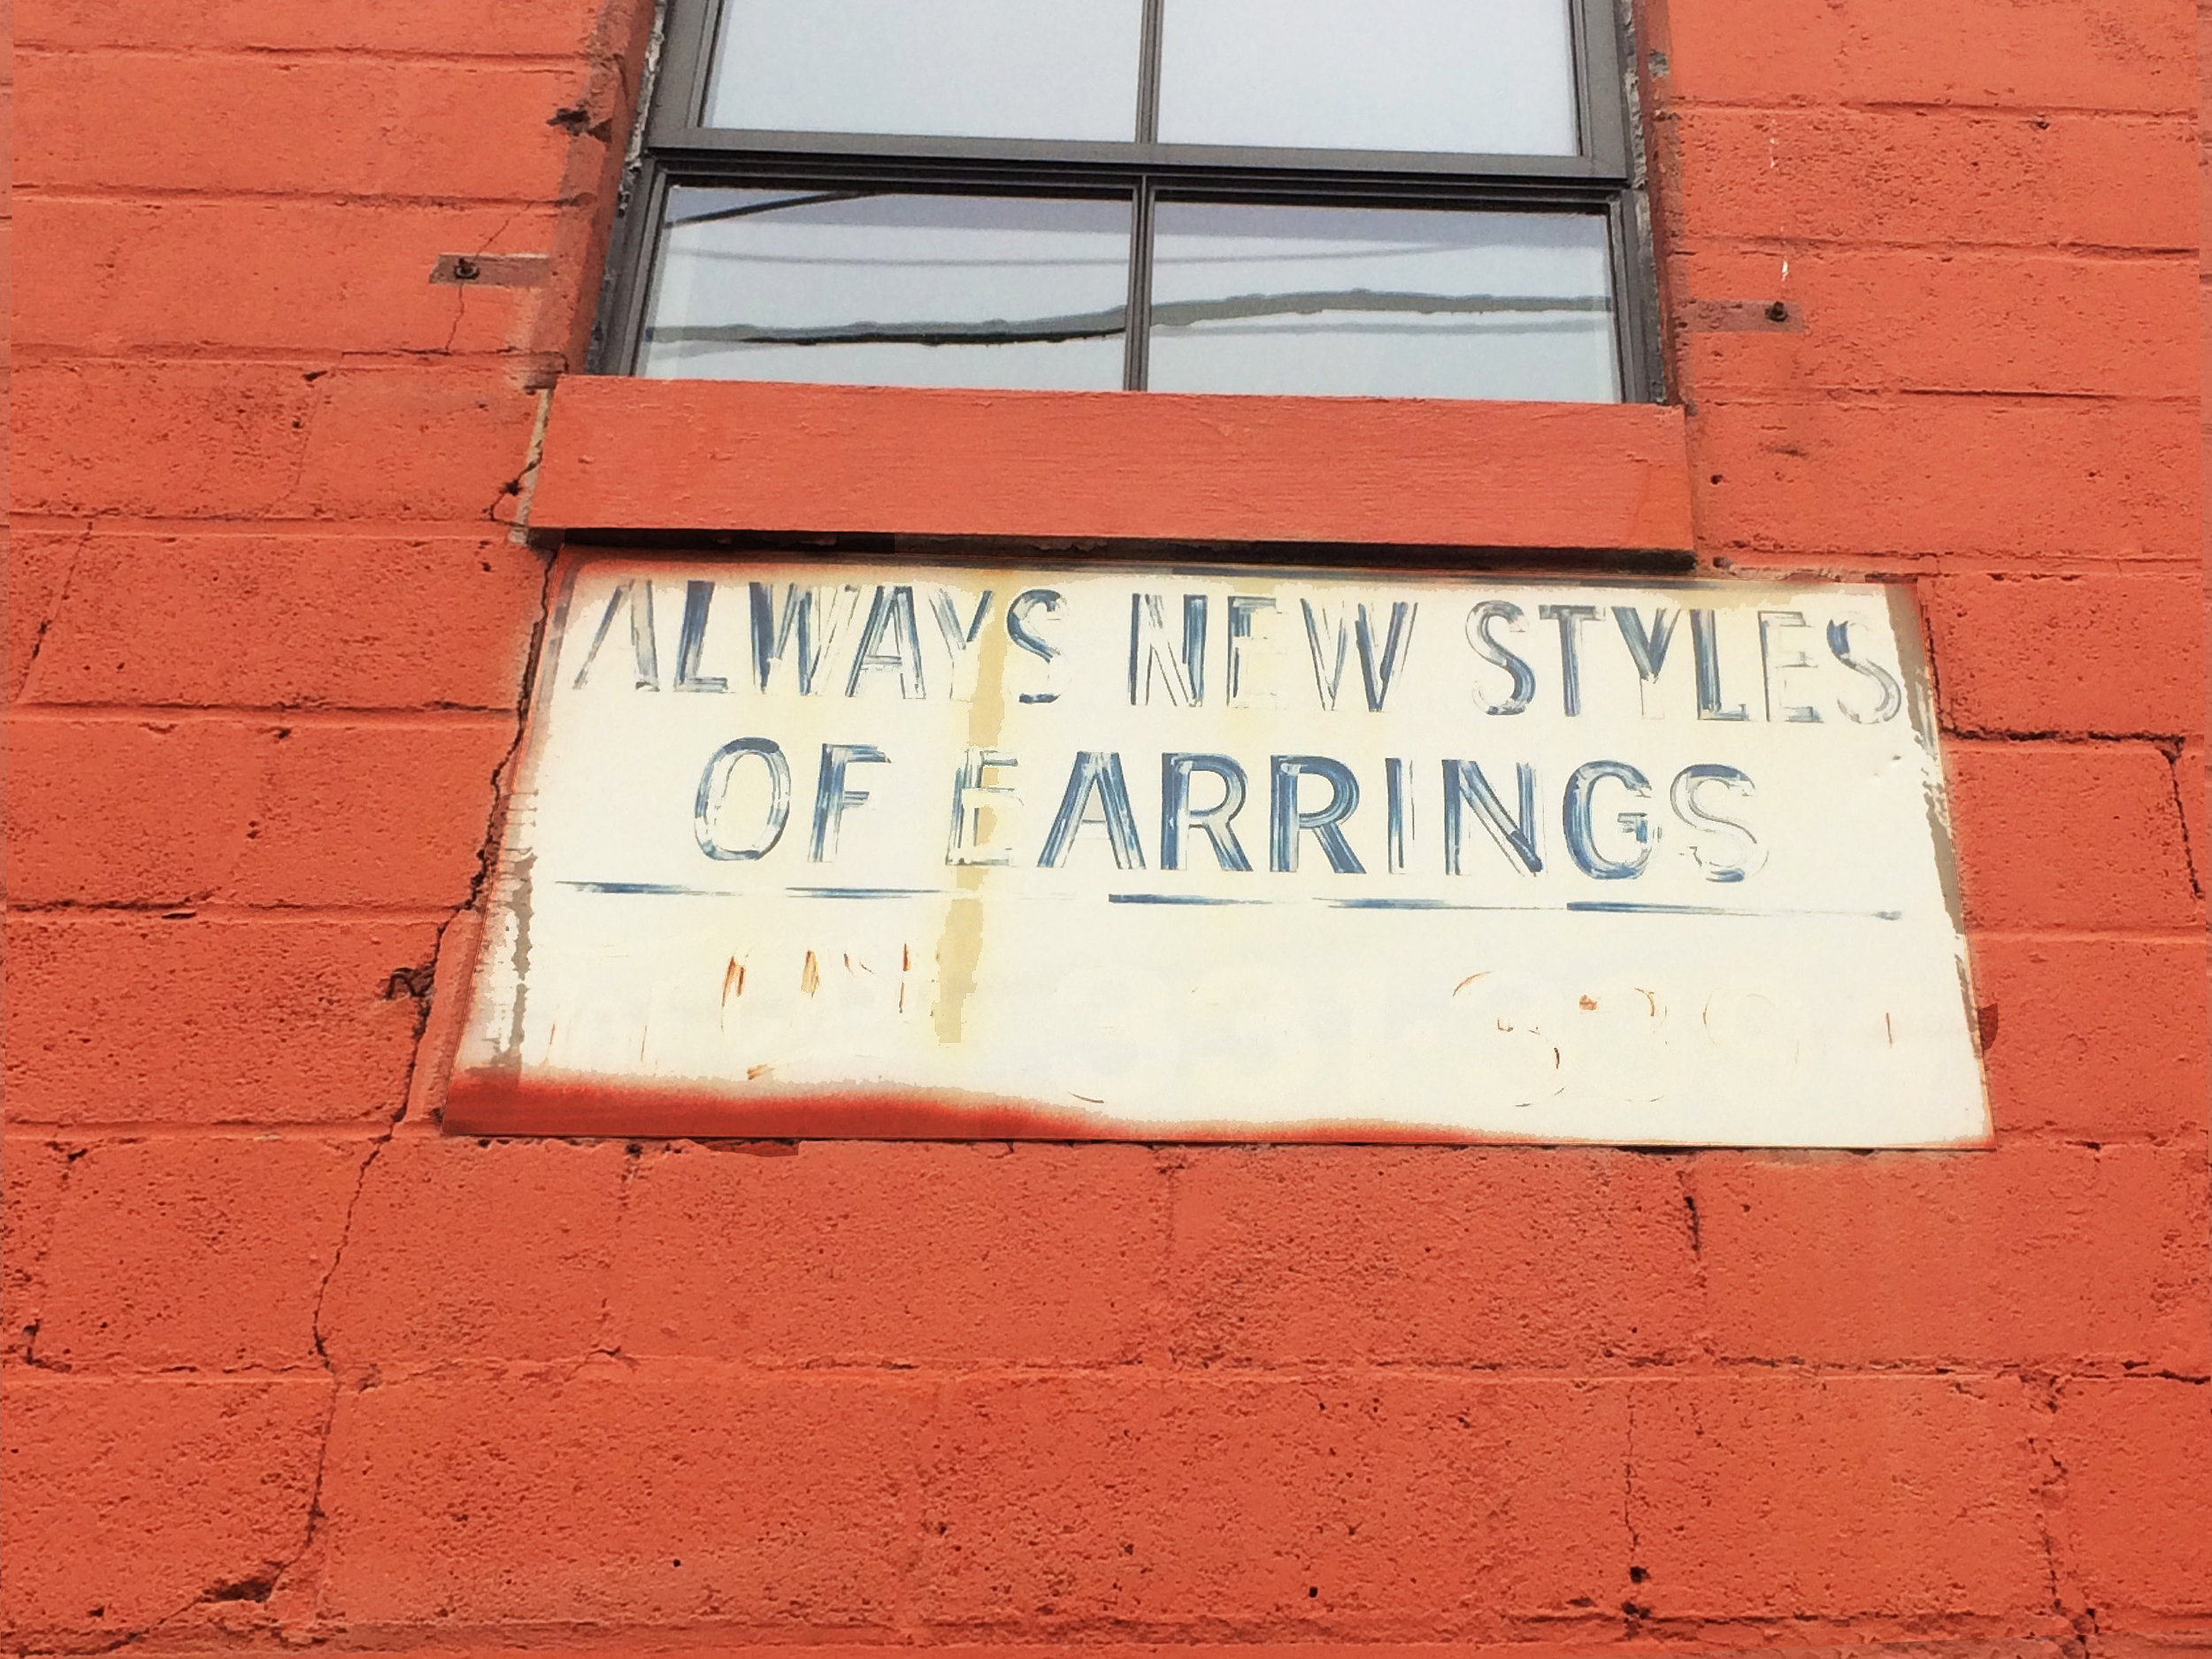 """ALWAYS NEW STYLES OF EARRINGS"" Still reads on one of the walls from the time the buidling was a storage for costume jewelry, a testament to its layered history"